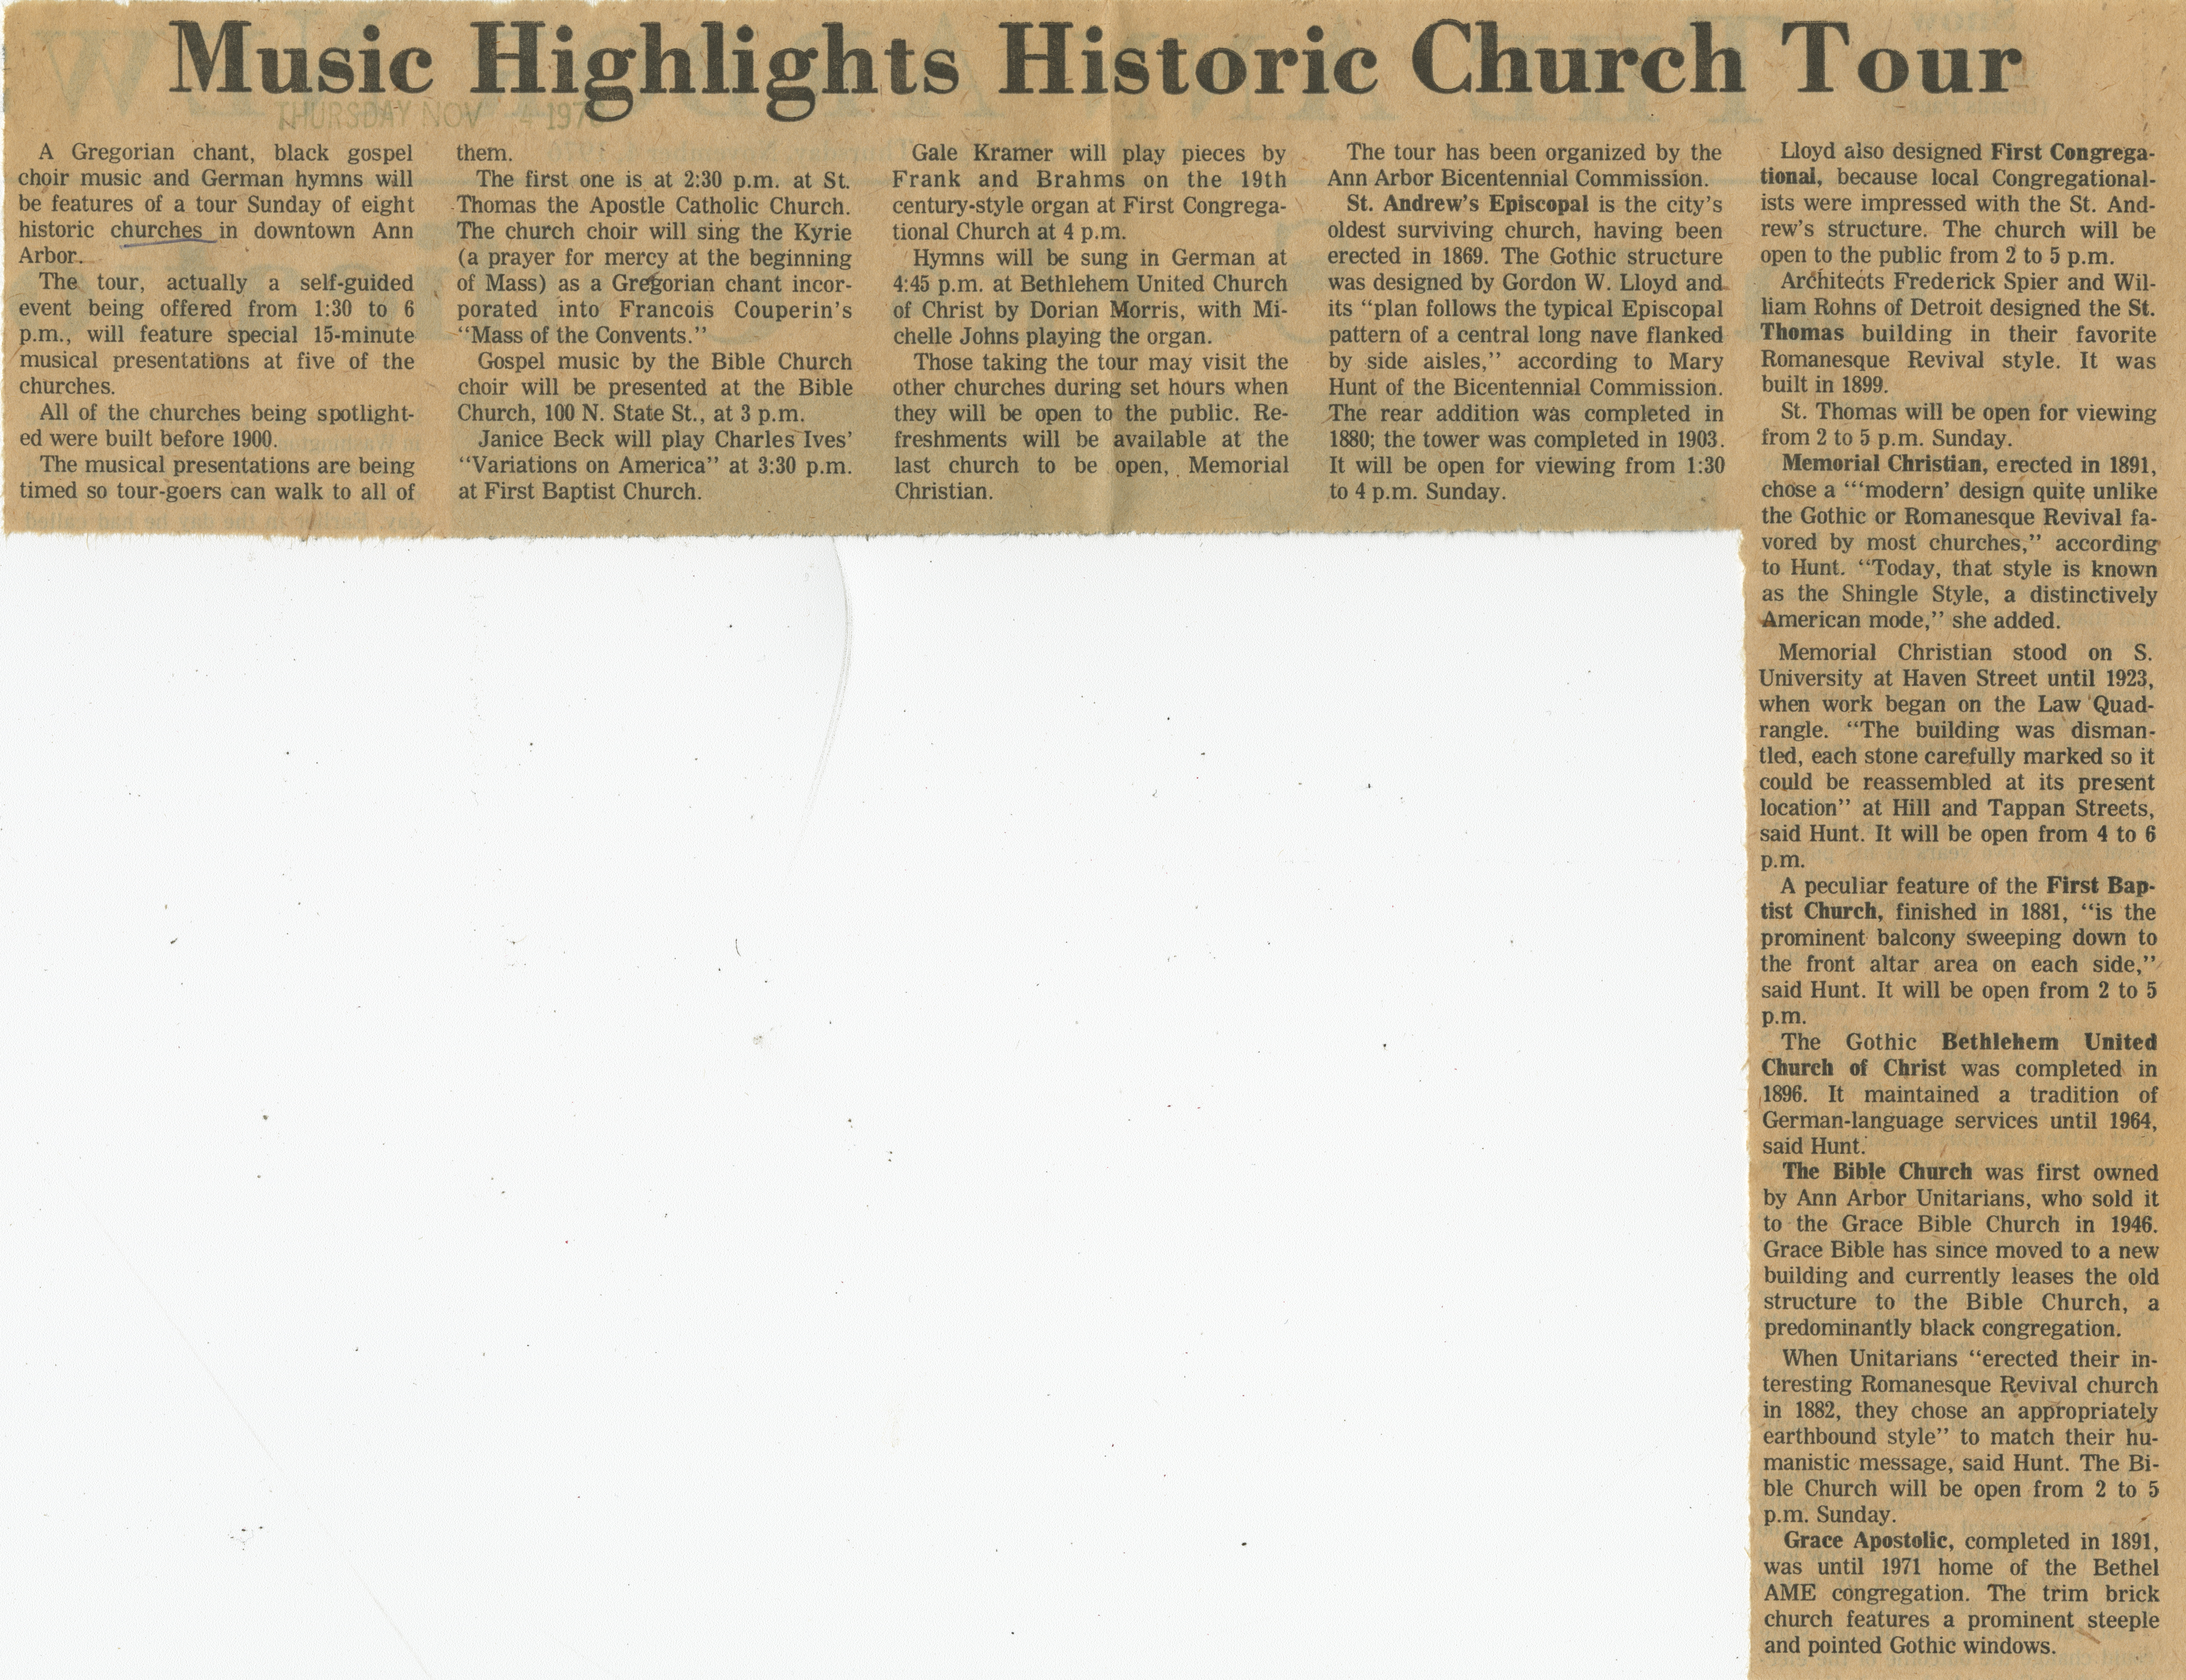 Music Highlights Historic Church Tour image